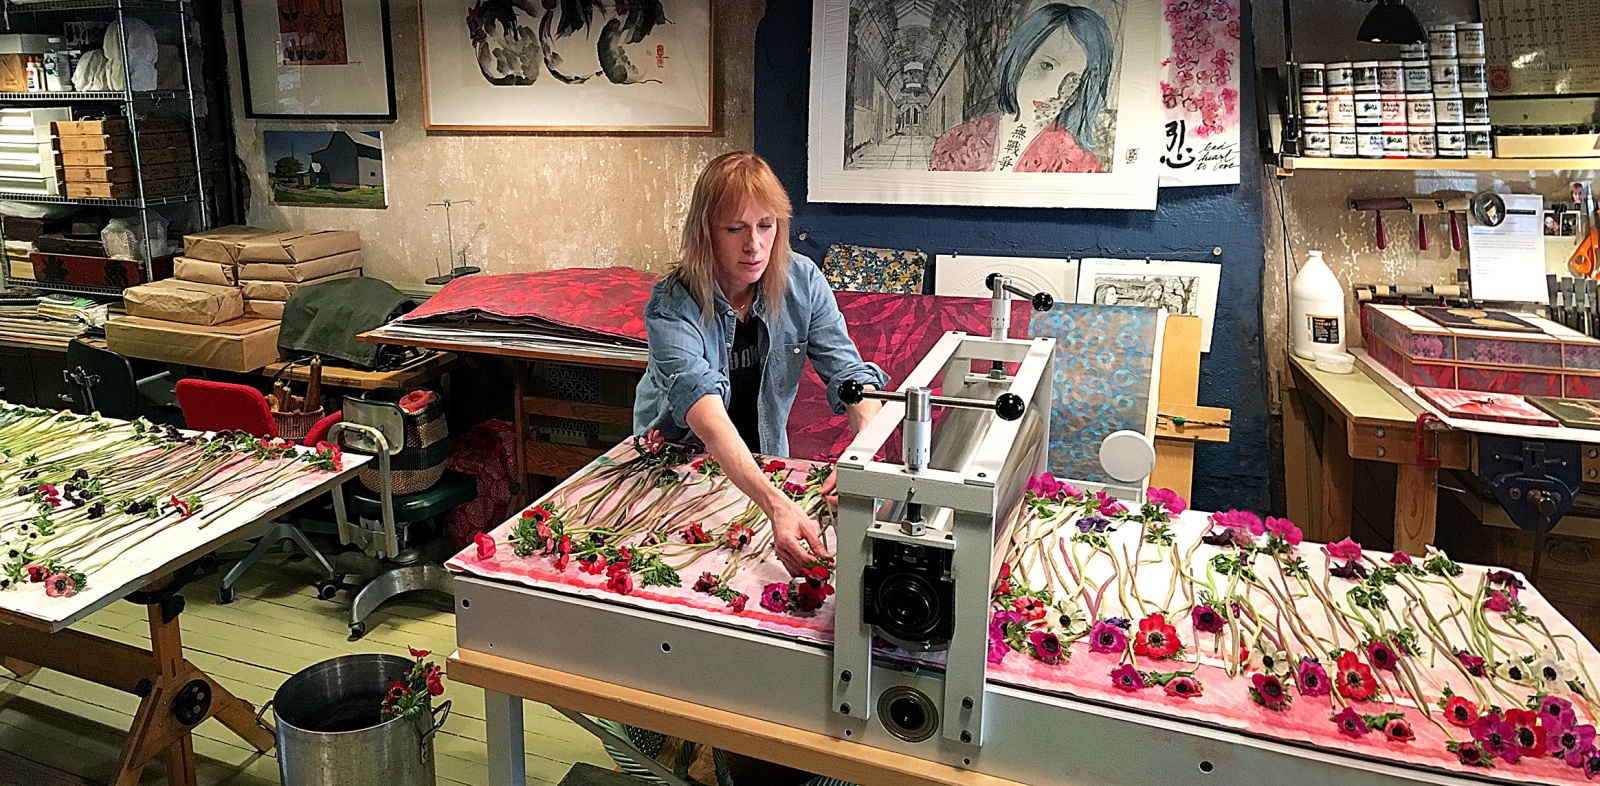 PD Packard artist and printmaker